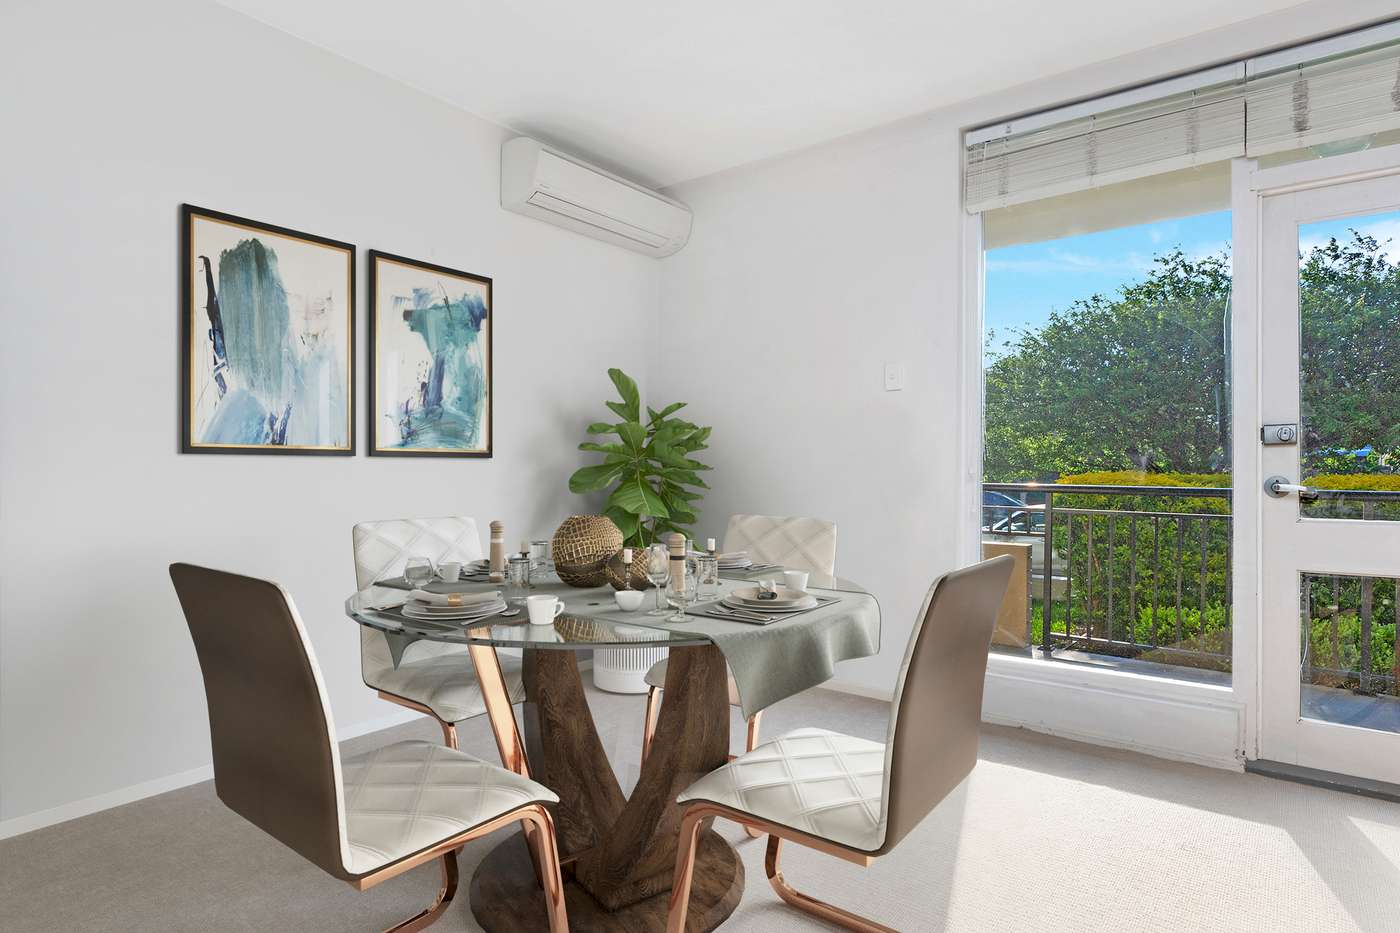 Main view of Homely apartment listing, 1/19 Johnson Street, Mascot, NSW 2020